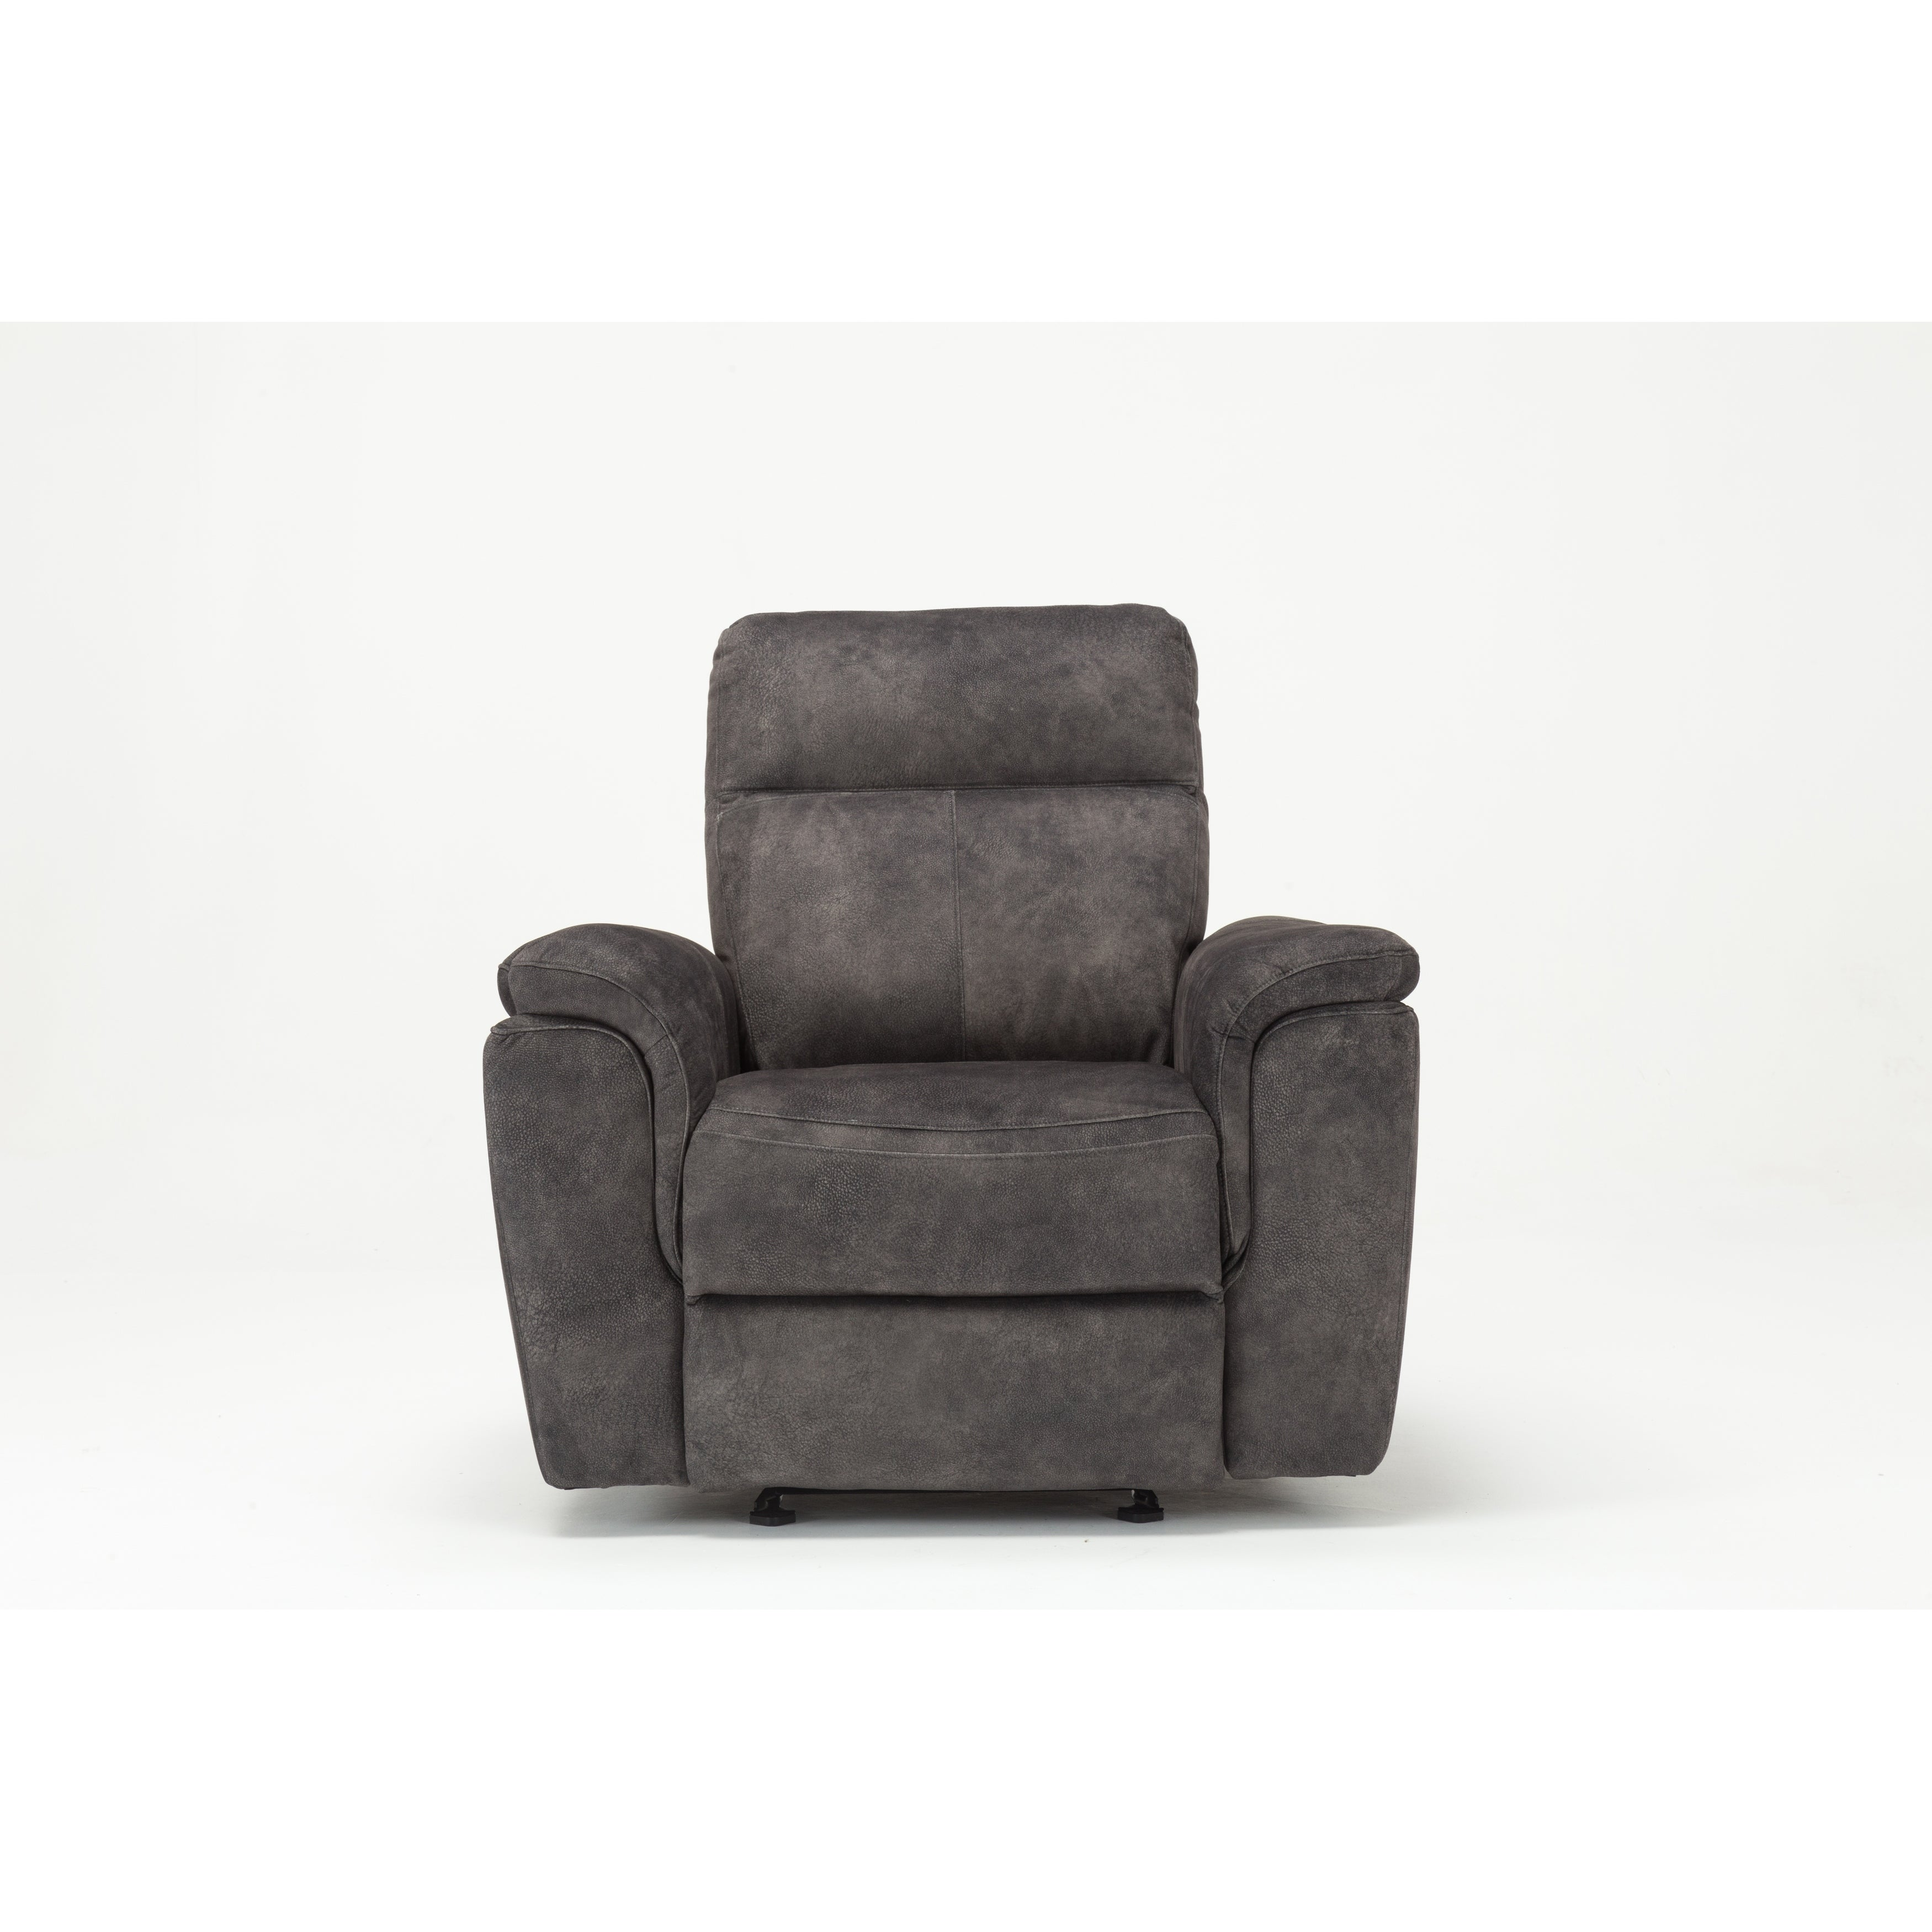 Shop Gu Industries Palomino Fabric Upholstered Living Room Recliner